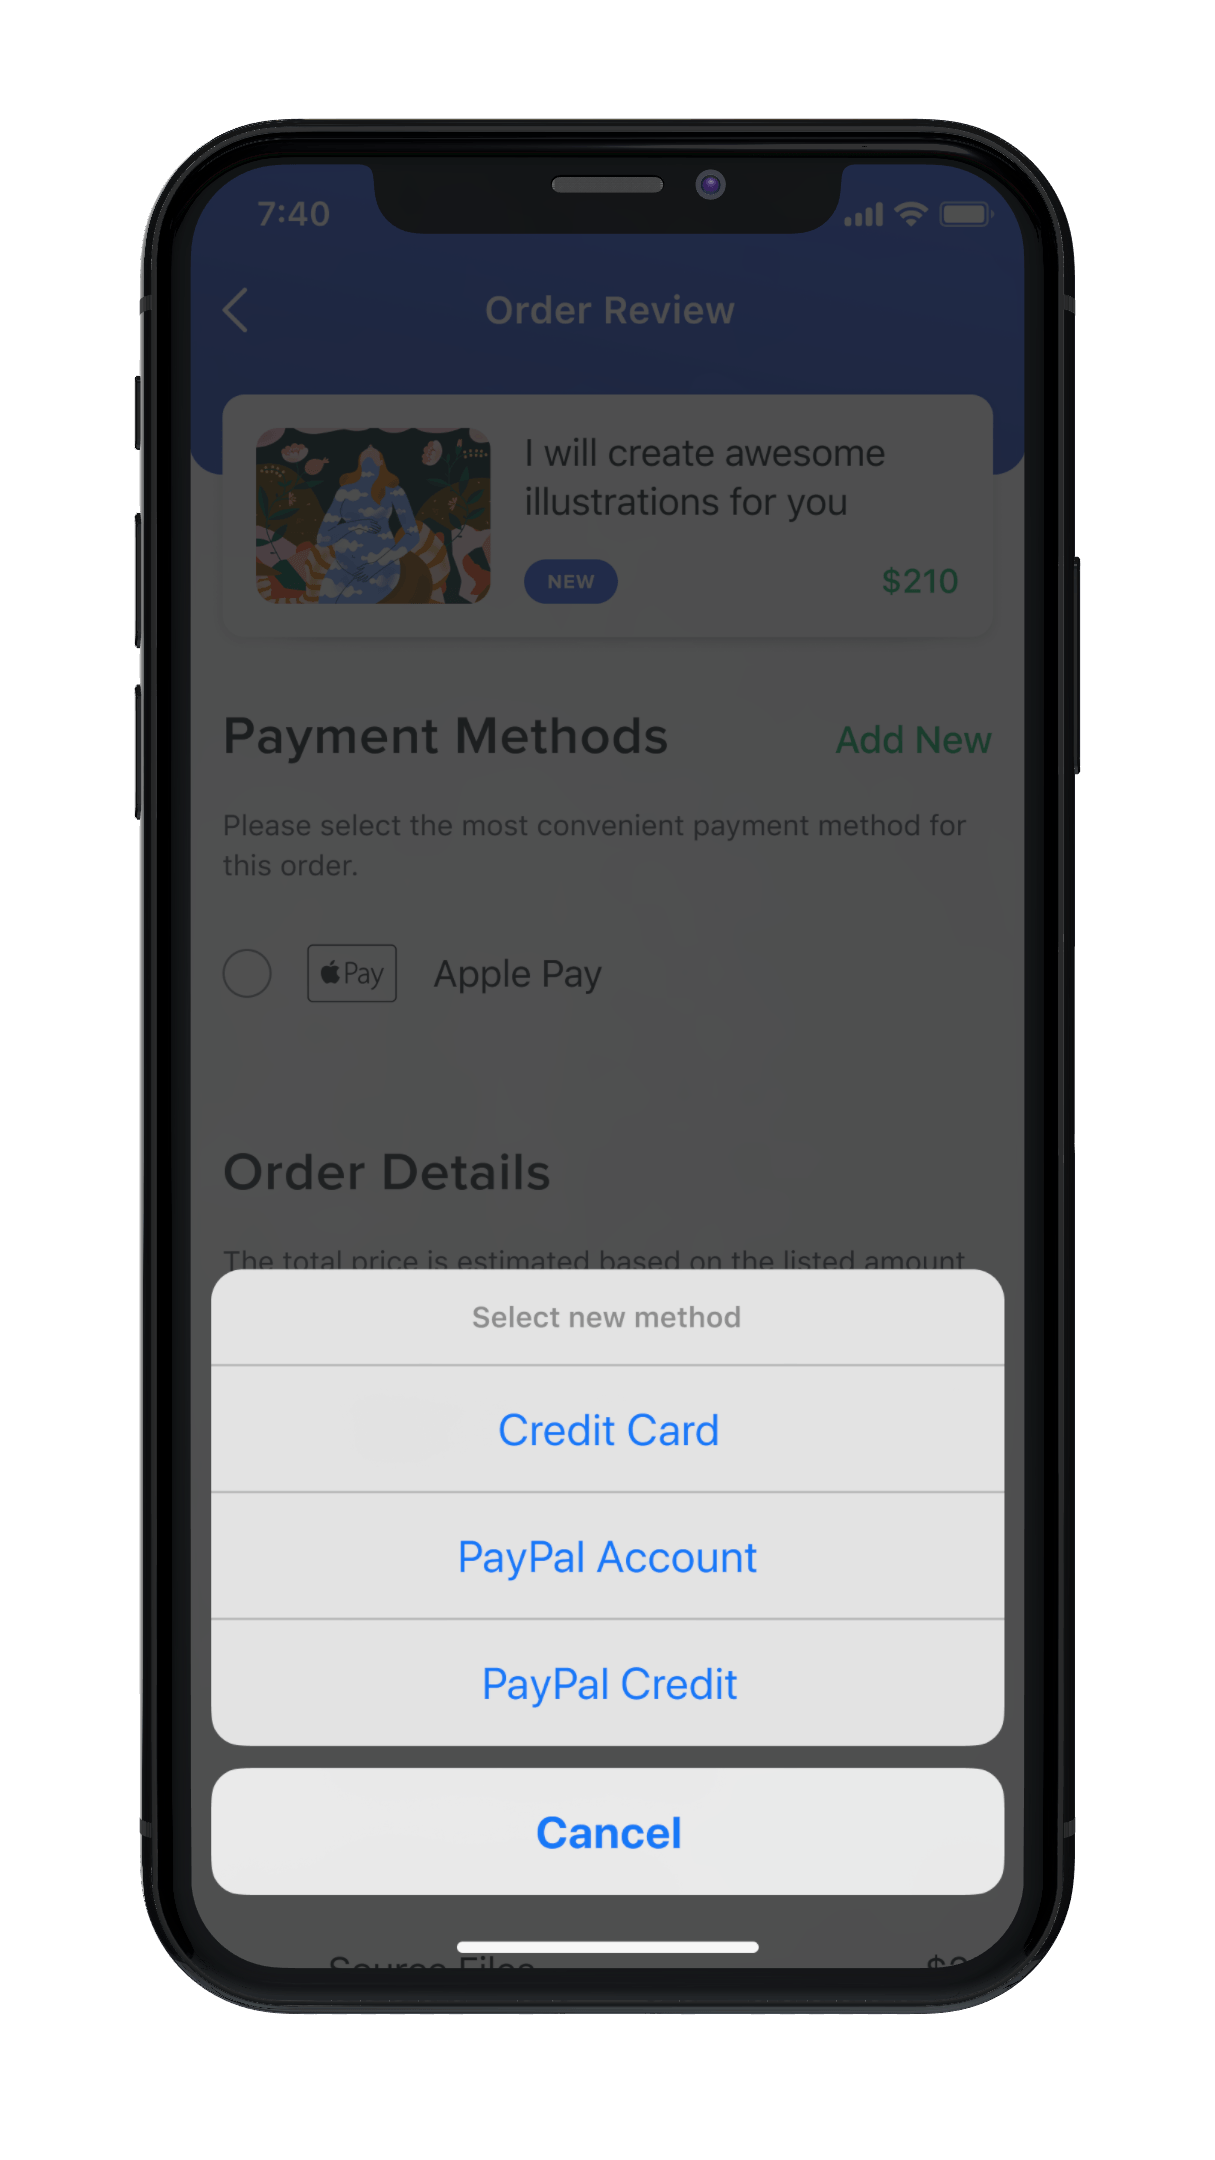 orderreview_02